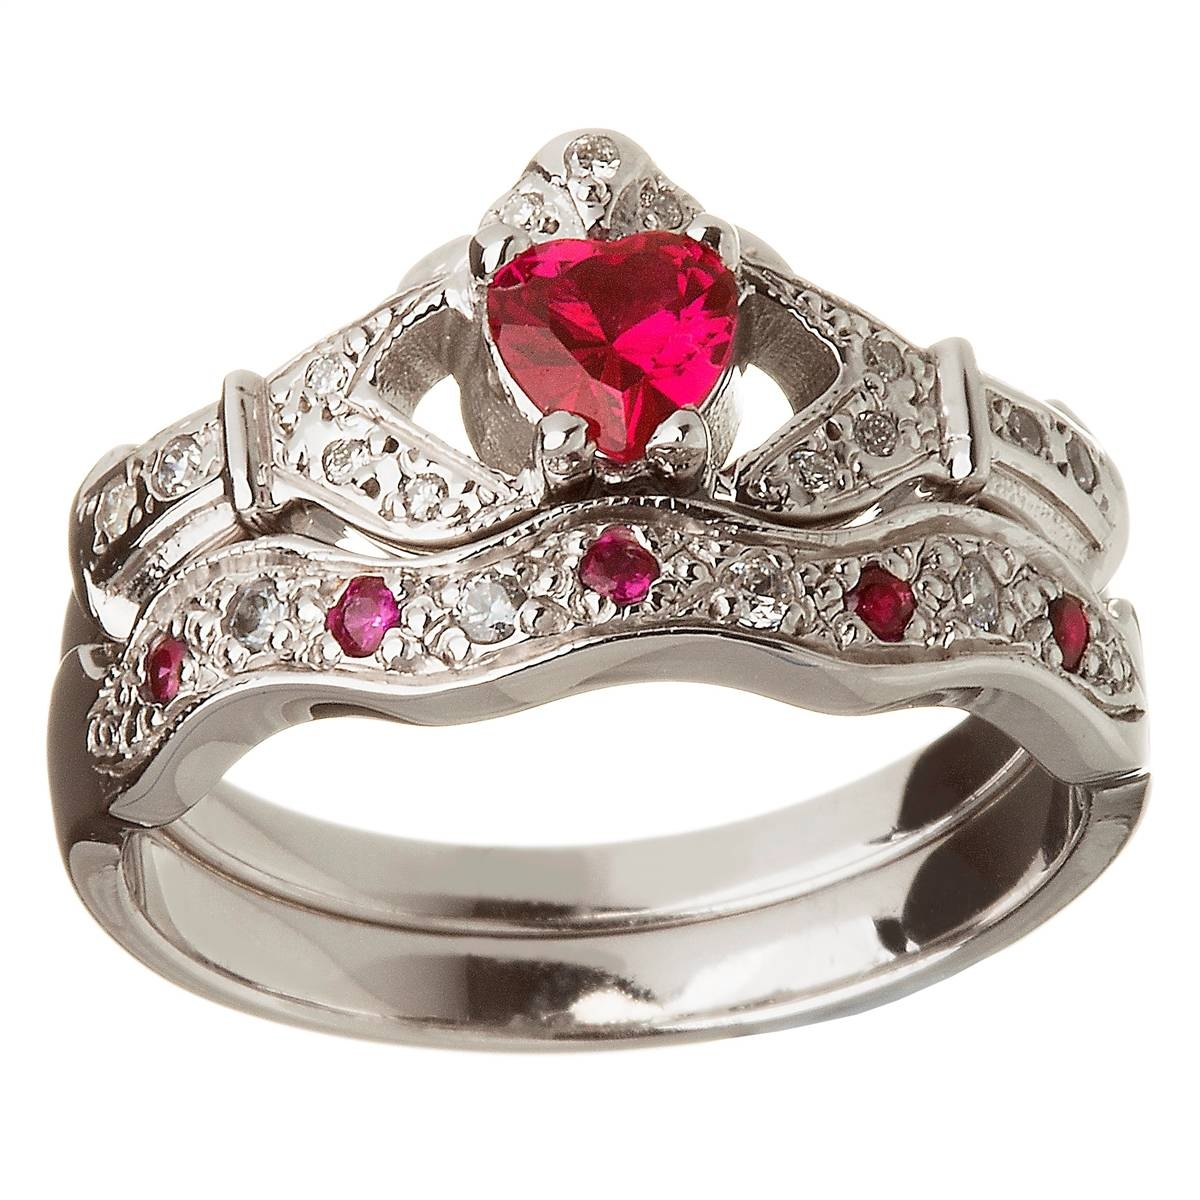 14K White Gold Ruby Set Heart Claddagh Ring & Wedding Ring Set Intended For Engagement Claddagh Rings (View 2 of 15)